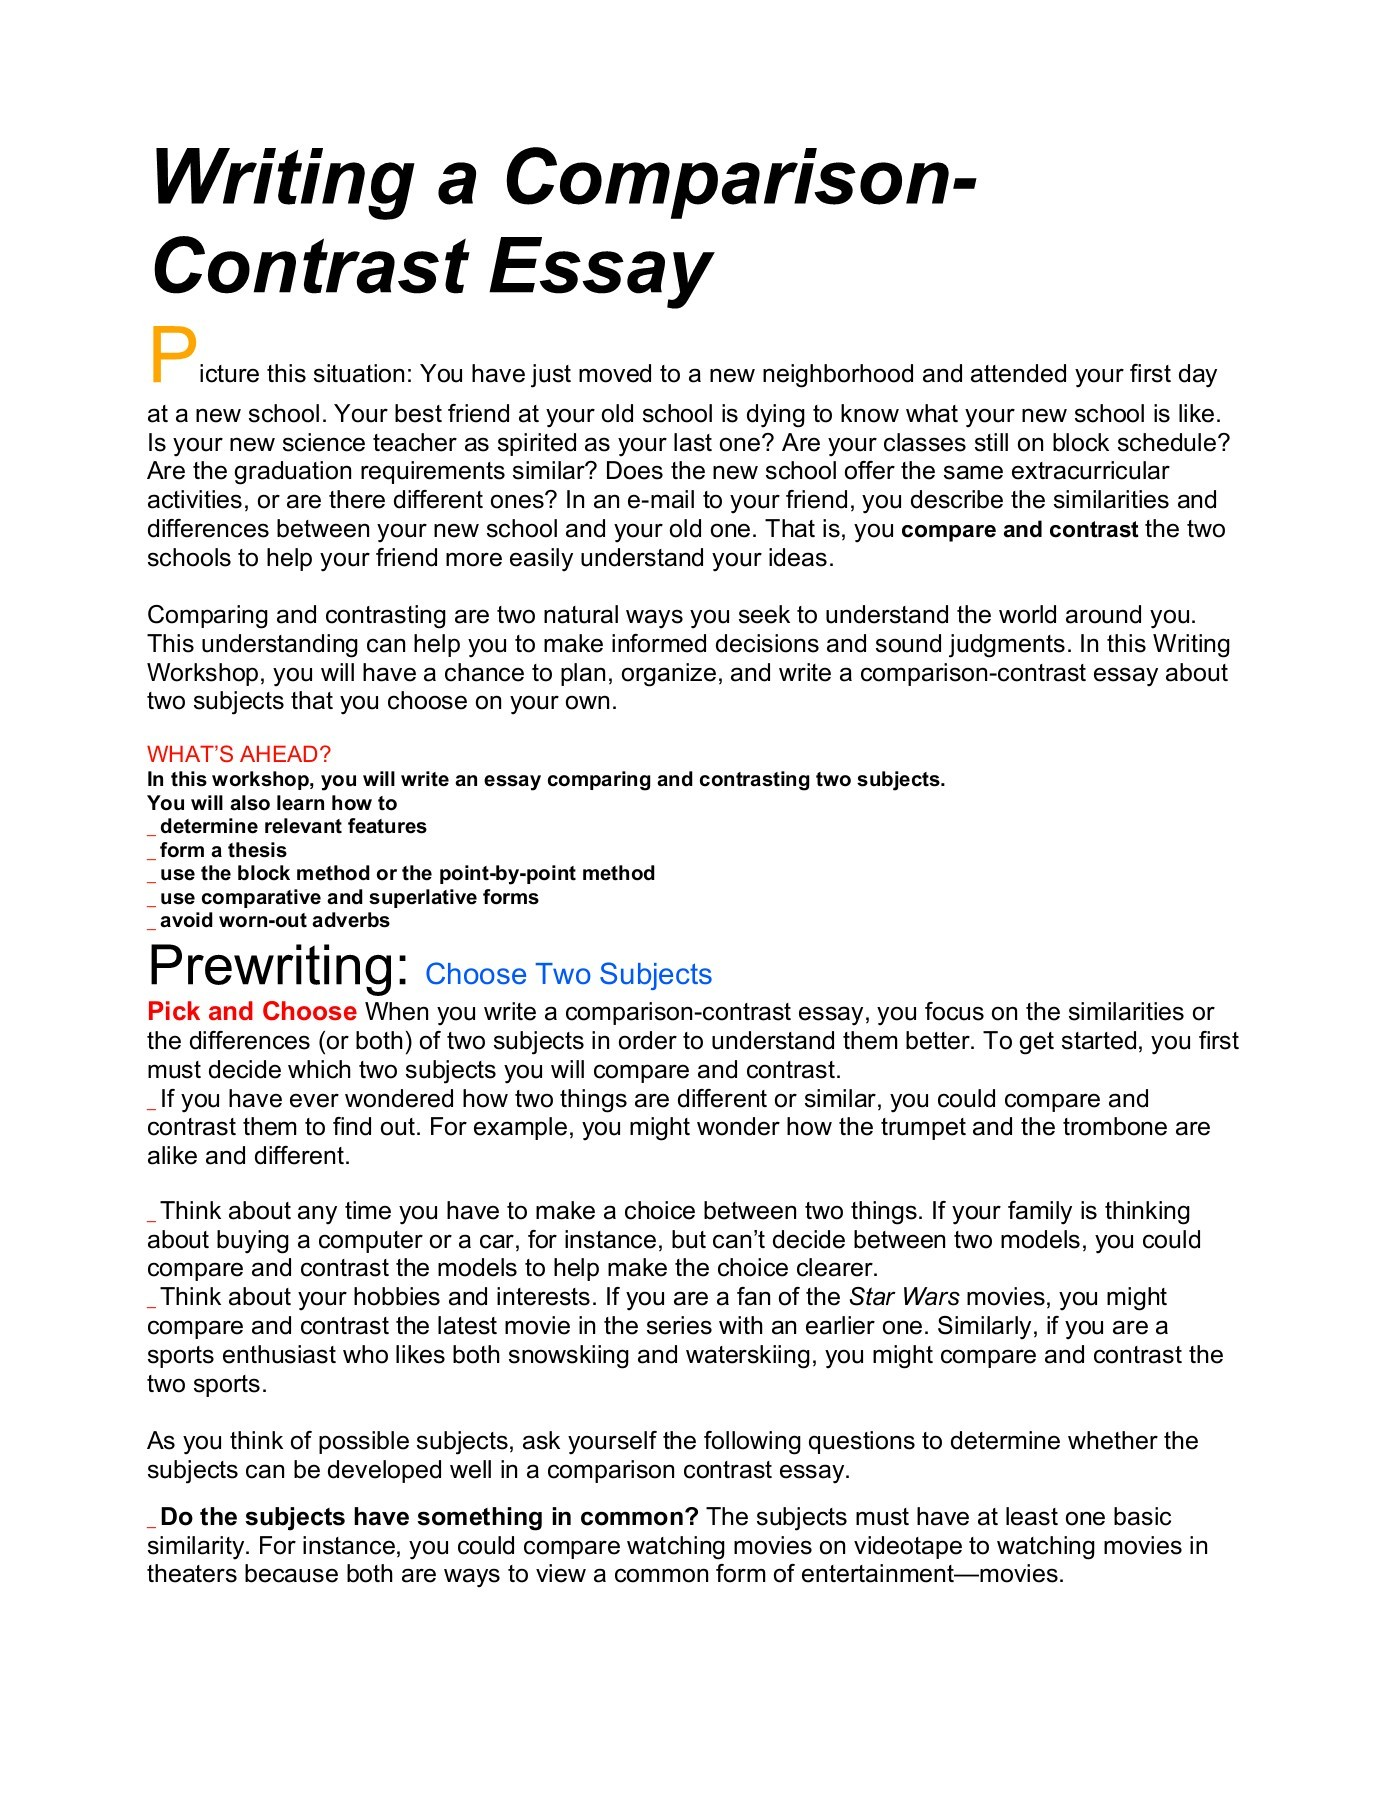 003 Essay Example How To Write Comparison And Unforgettable A Contrast An Introduction Conclusion For Compare Middle School Thesis Full